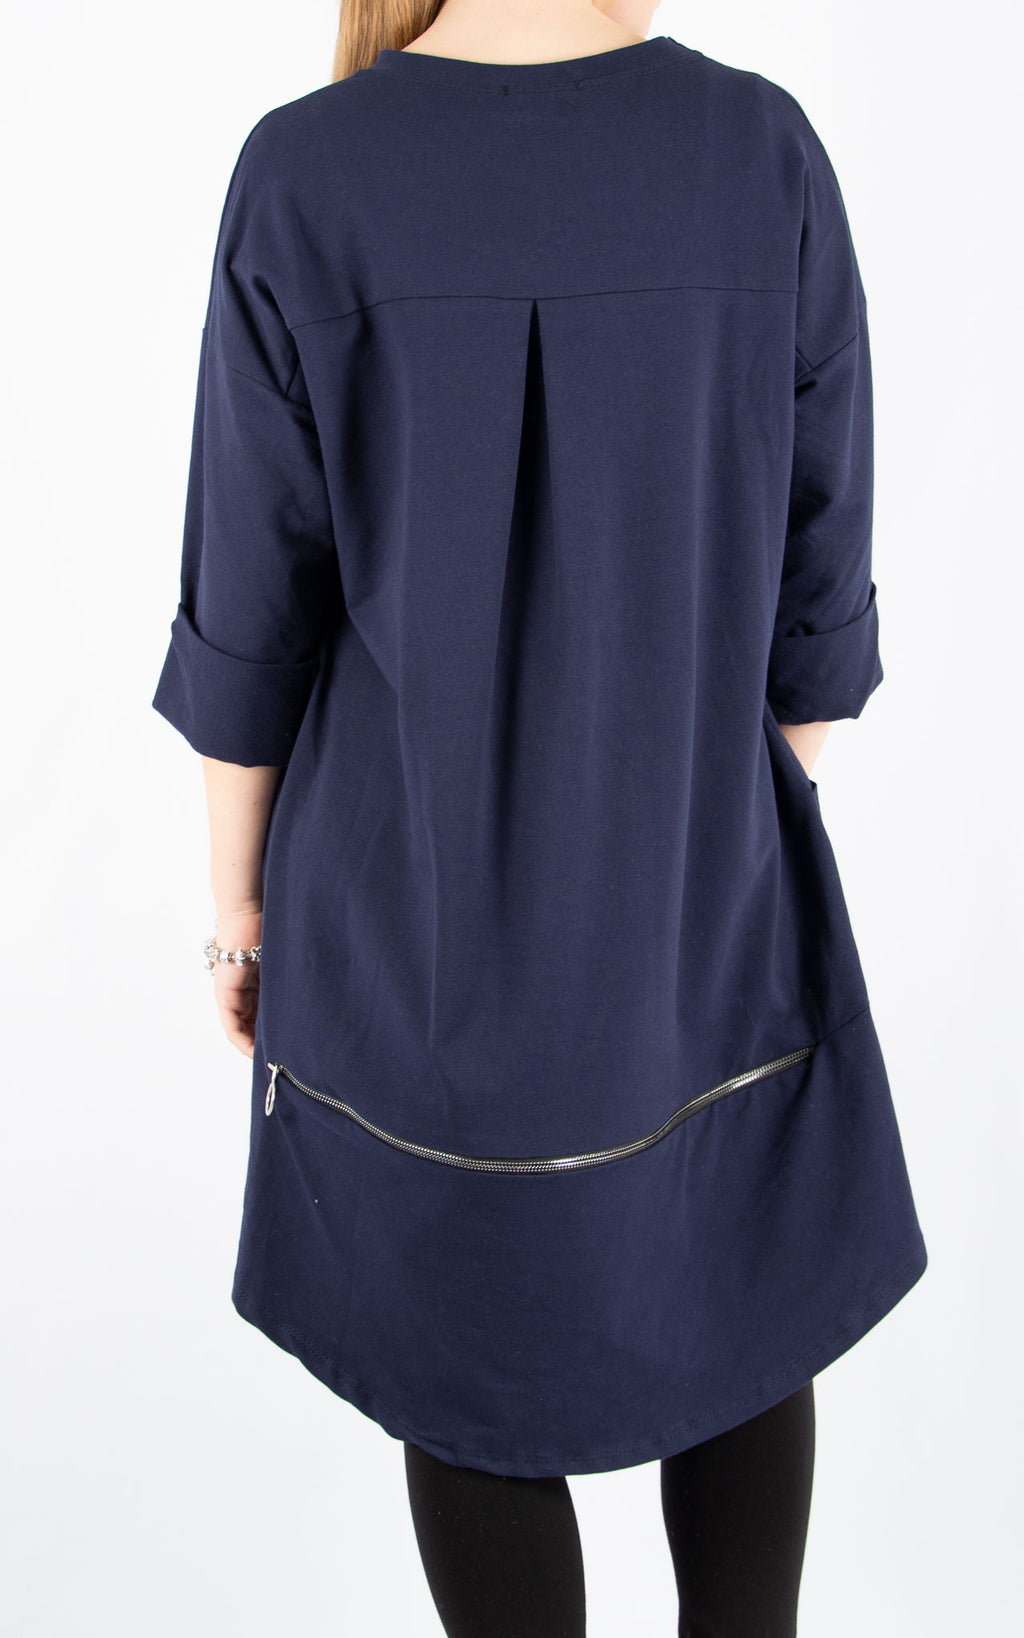 Navy Zippy Sweatshirt